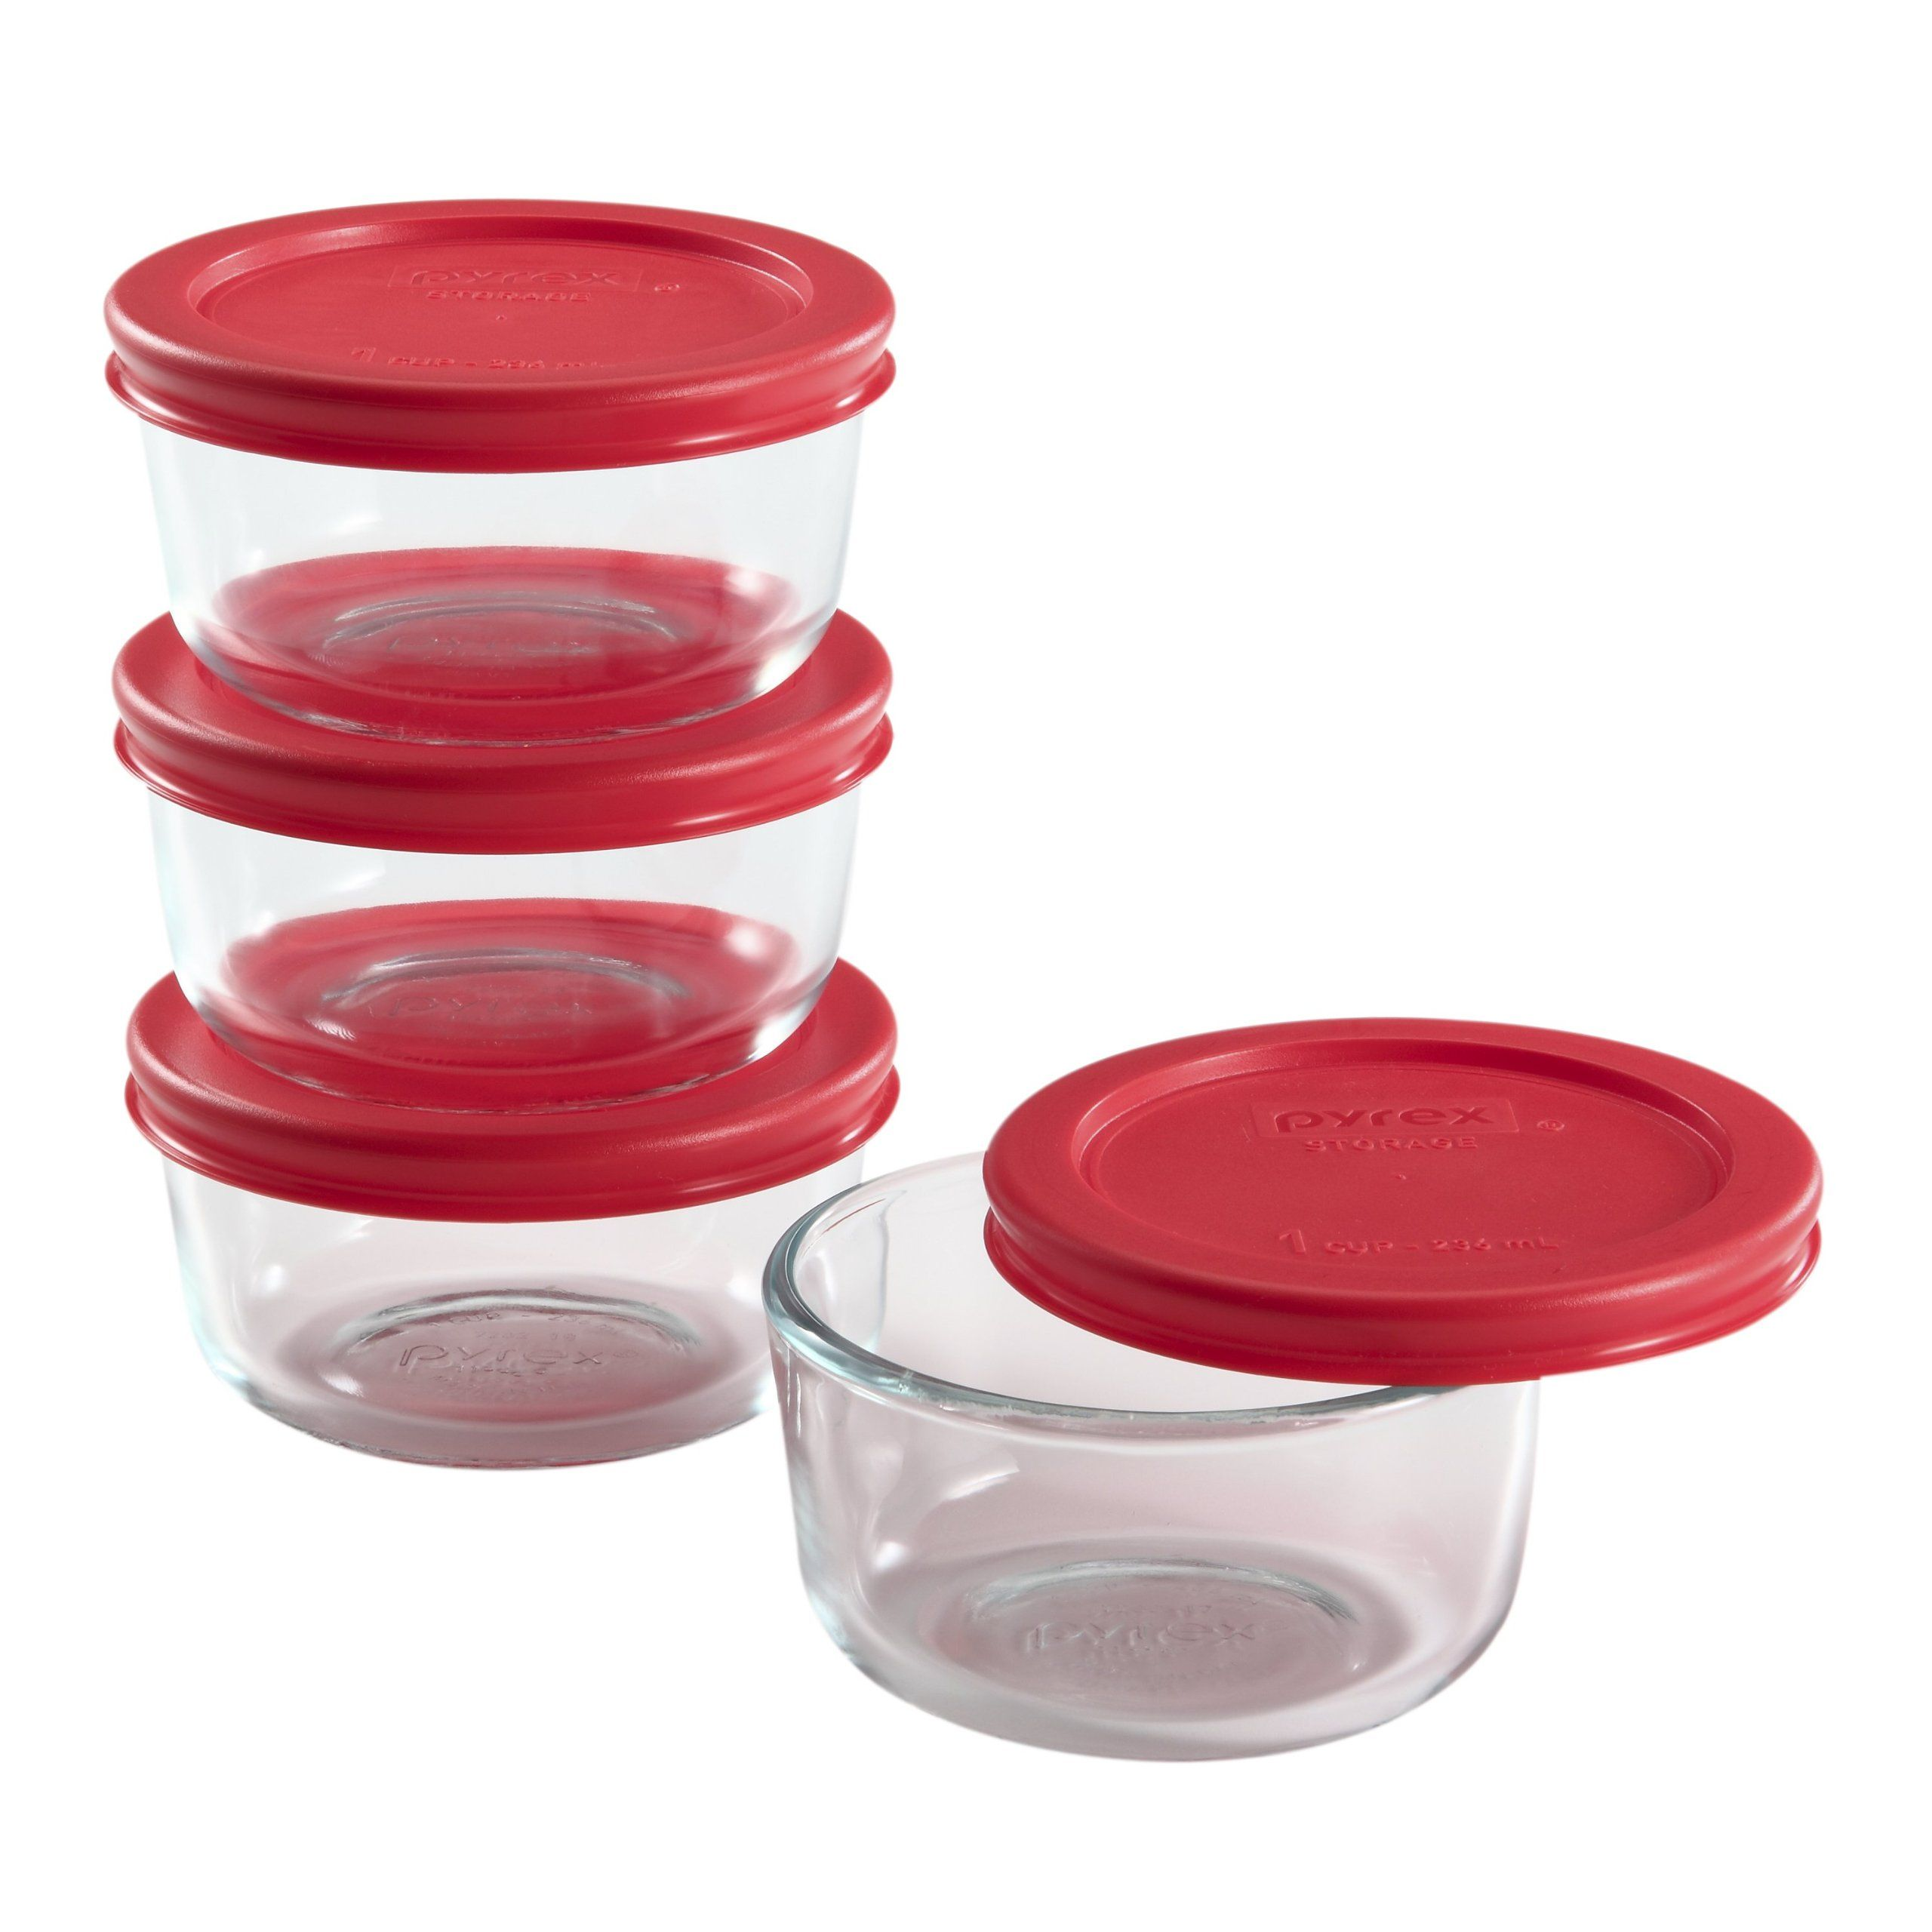 Amazon Com Pyrex 8 Piece Glass Food Storage Set With Lids Pyrex Glass Storage Containers Wi Glass Food Storage Glass Food Storage Containers Food Storage Set